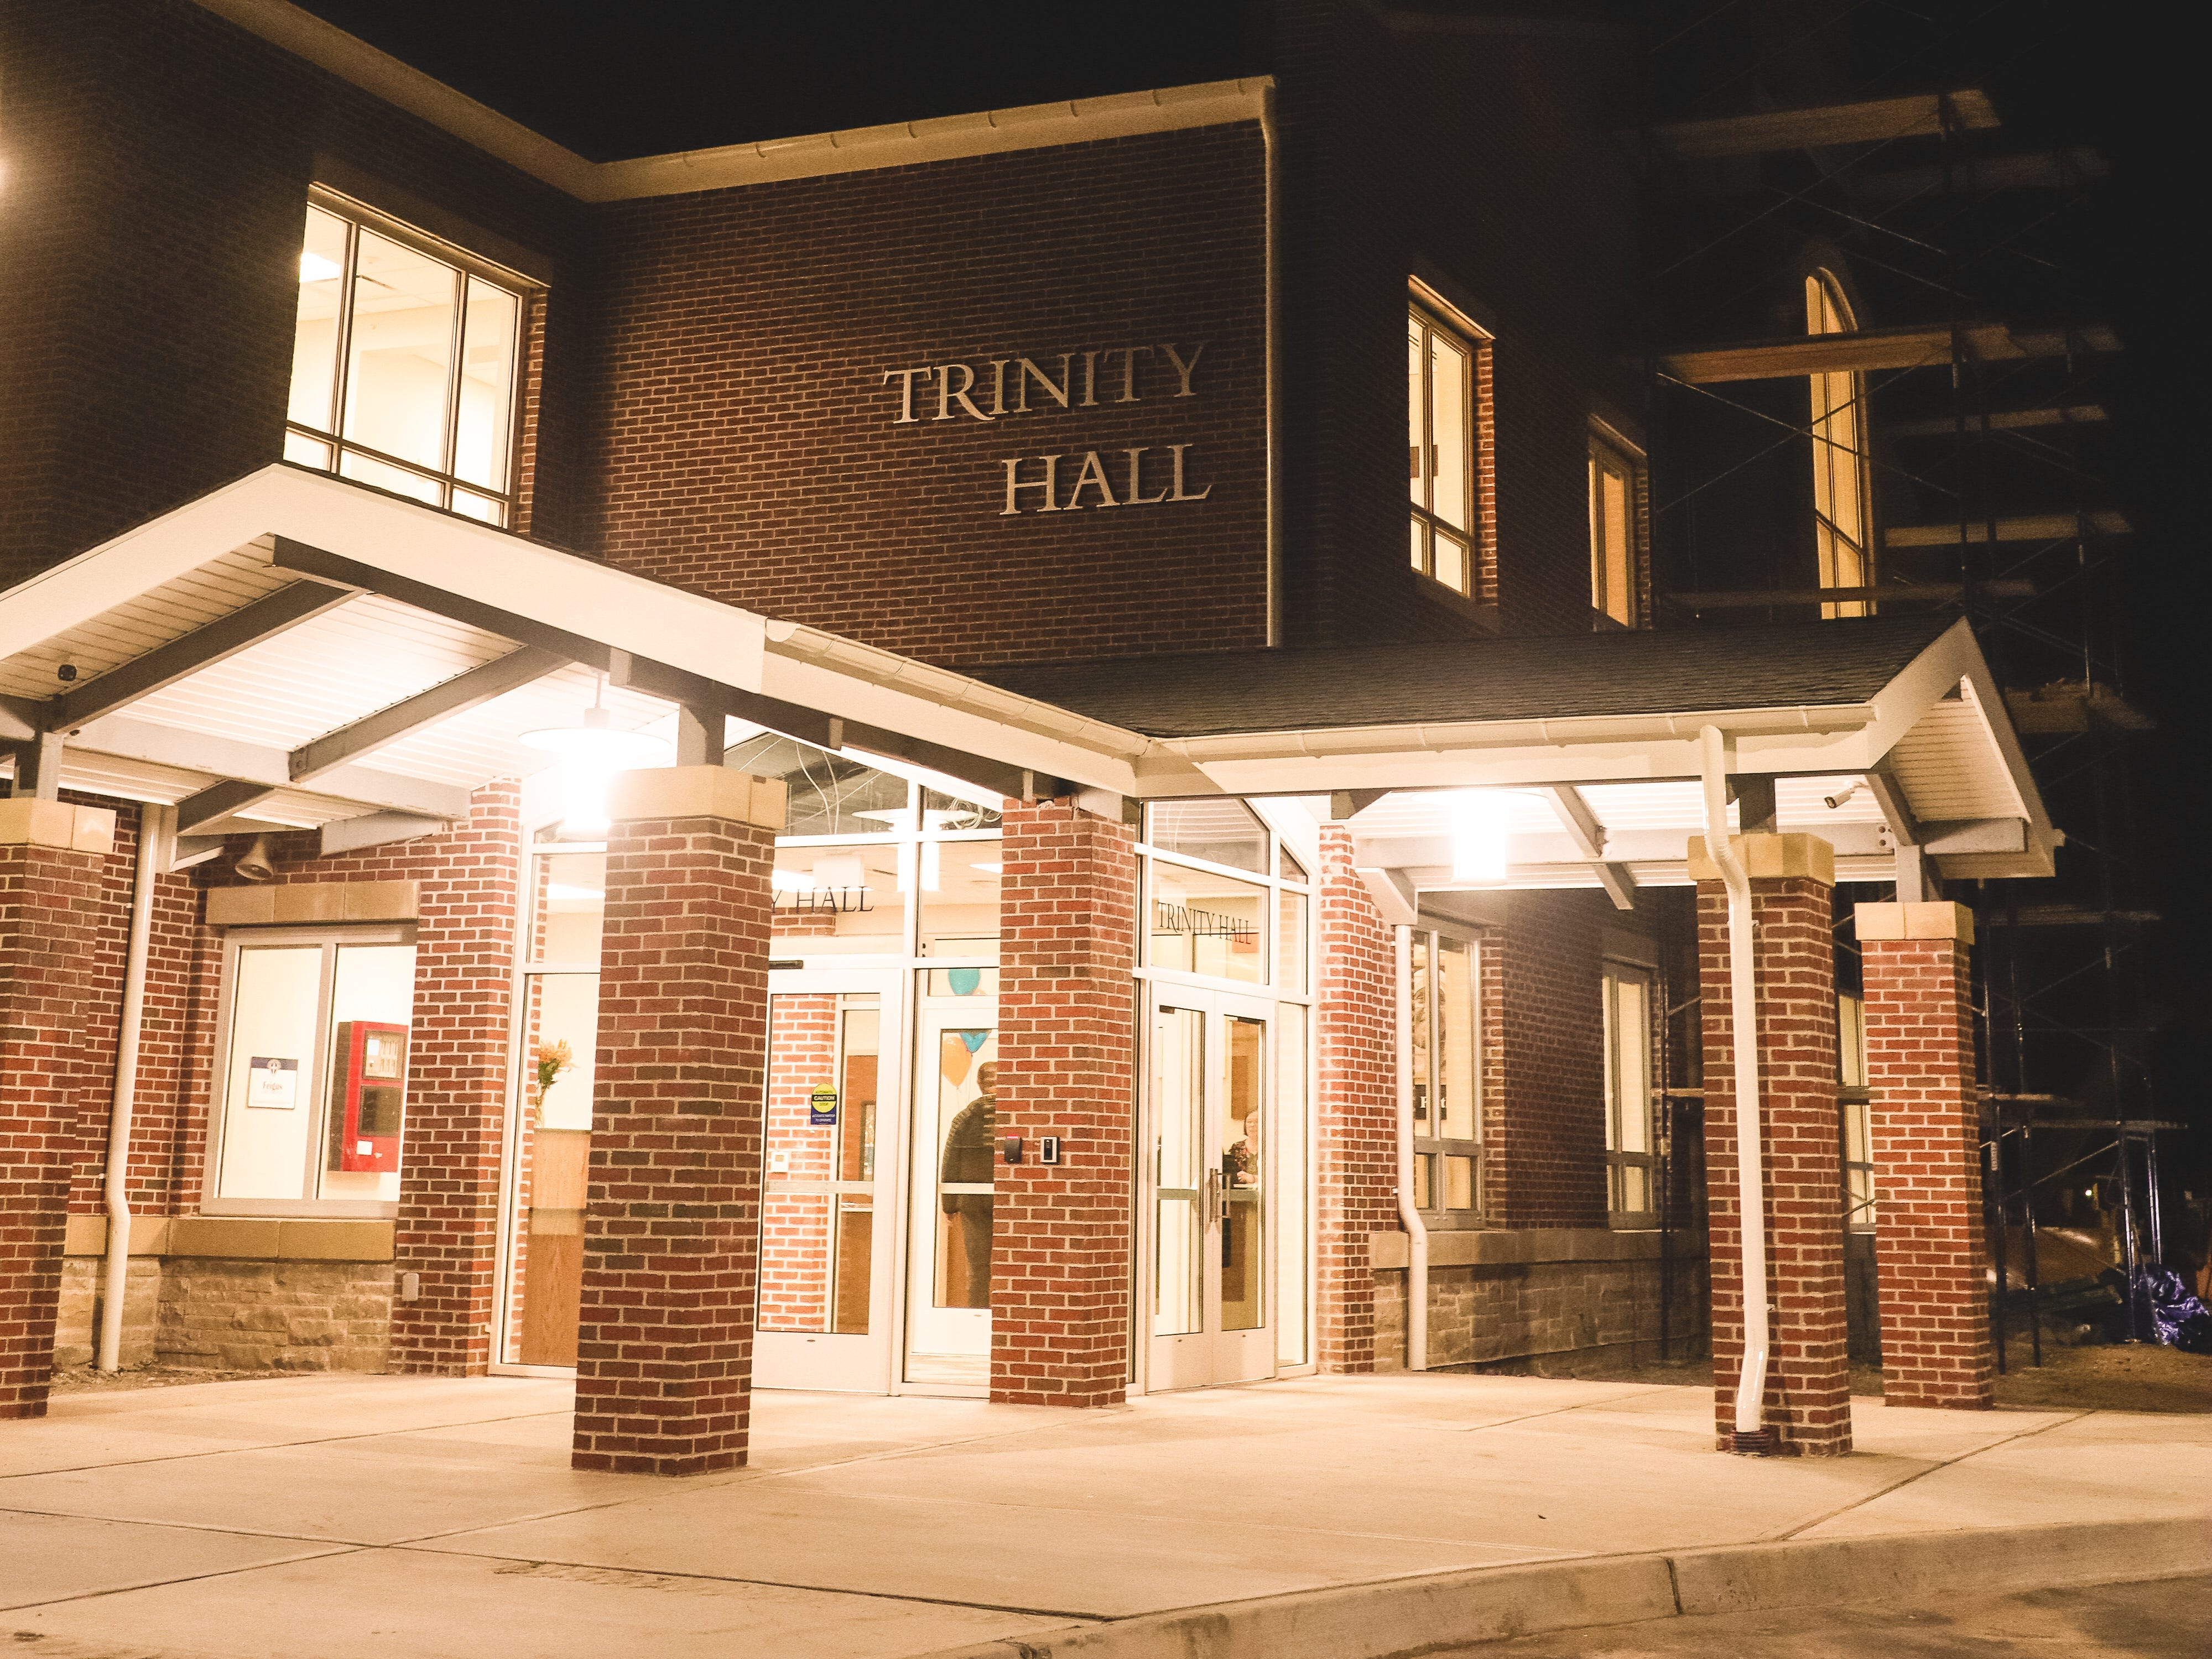 The new addition of Trinity Hall, an all-girls private school in Tinton Falls. Jan. 25, 2019.